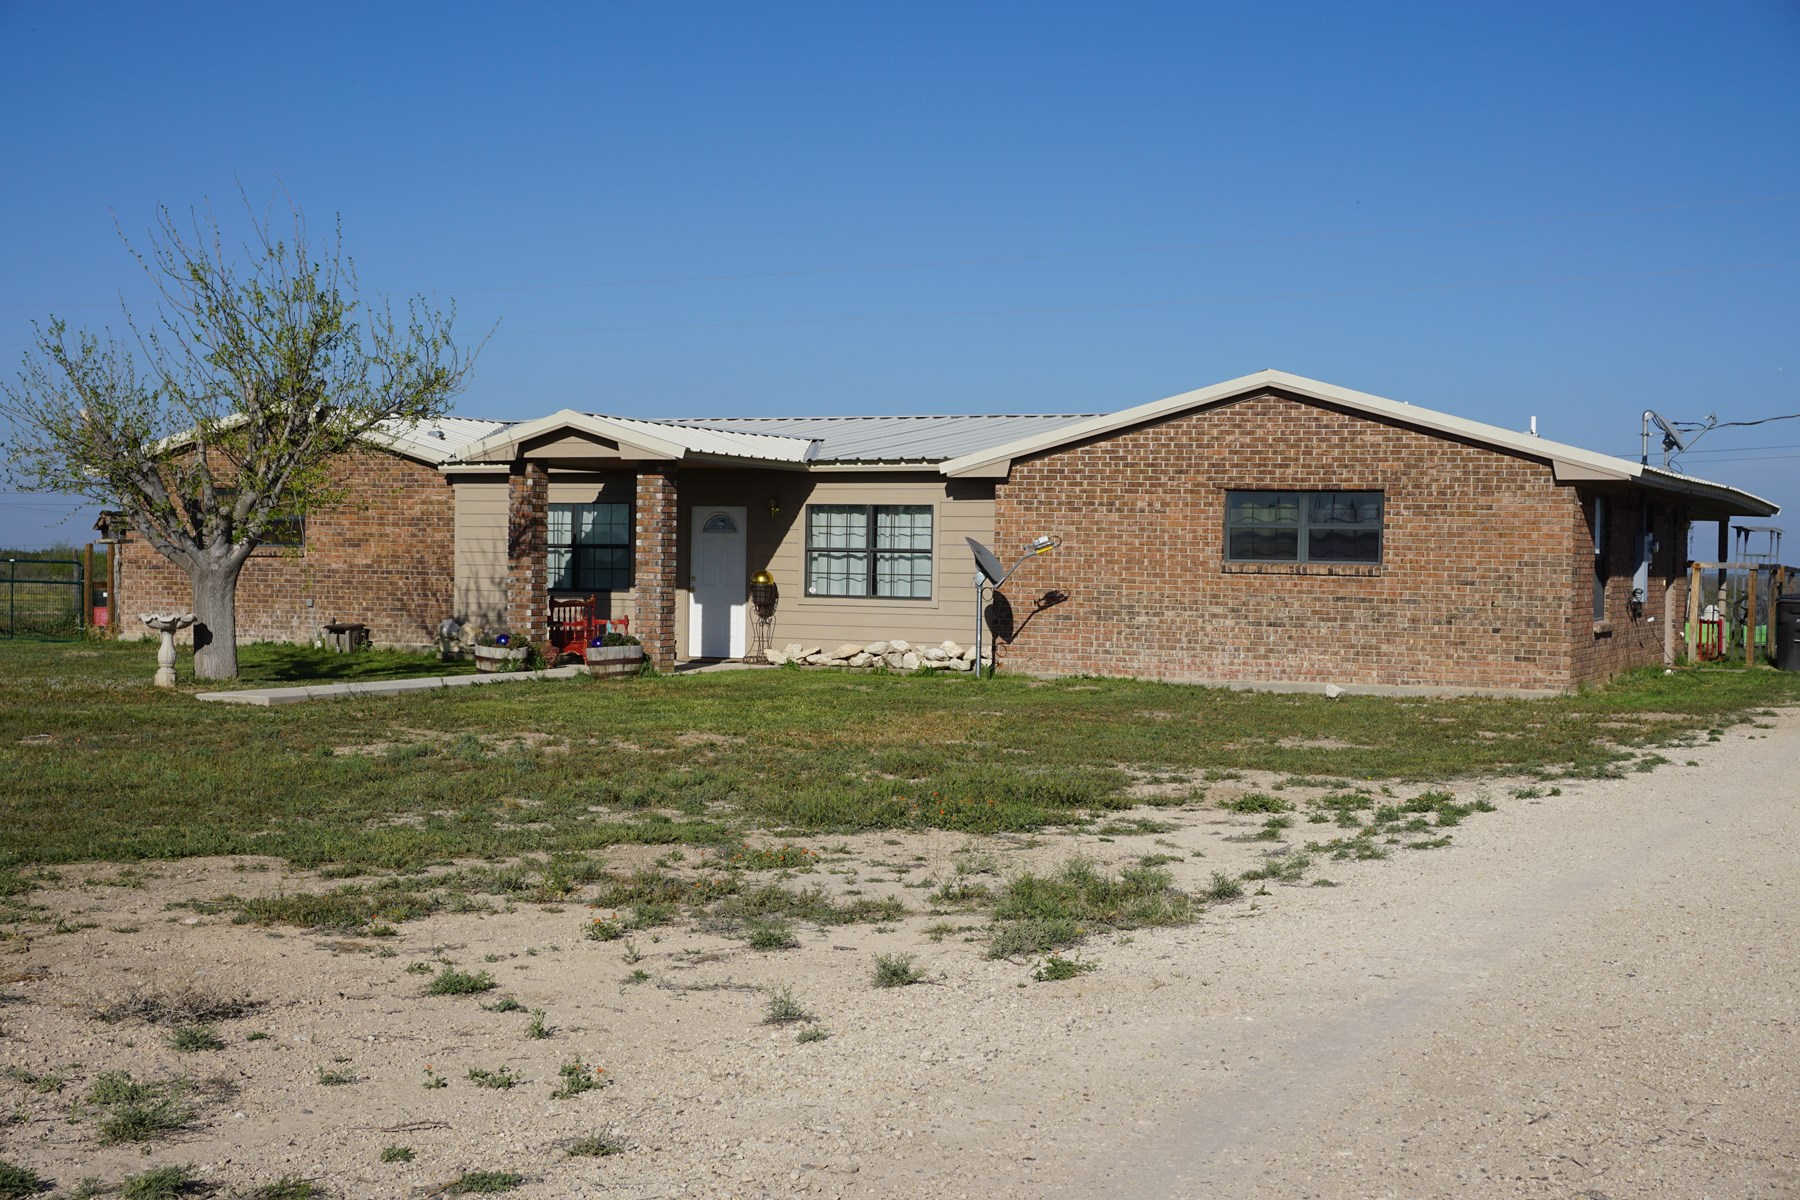 FOR COUNTRY HOME SEEKERS! 3BR 2 BA HOME IN FORT STOCKTON, TX